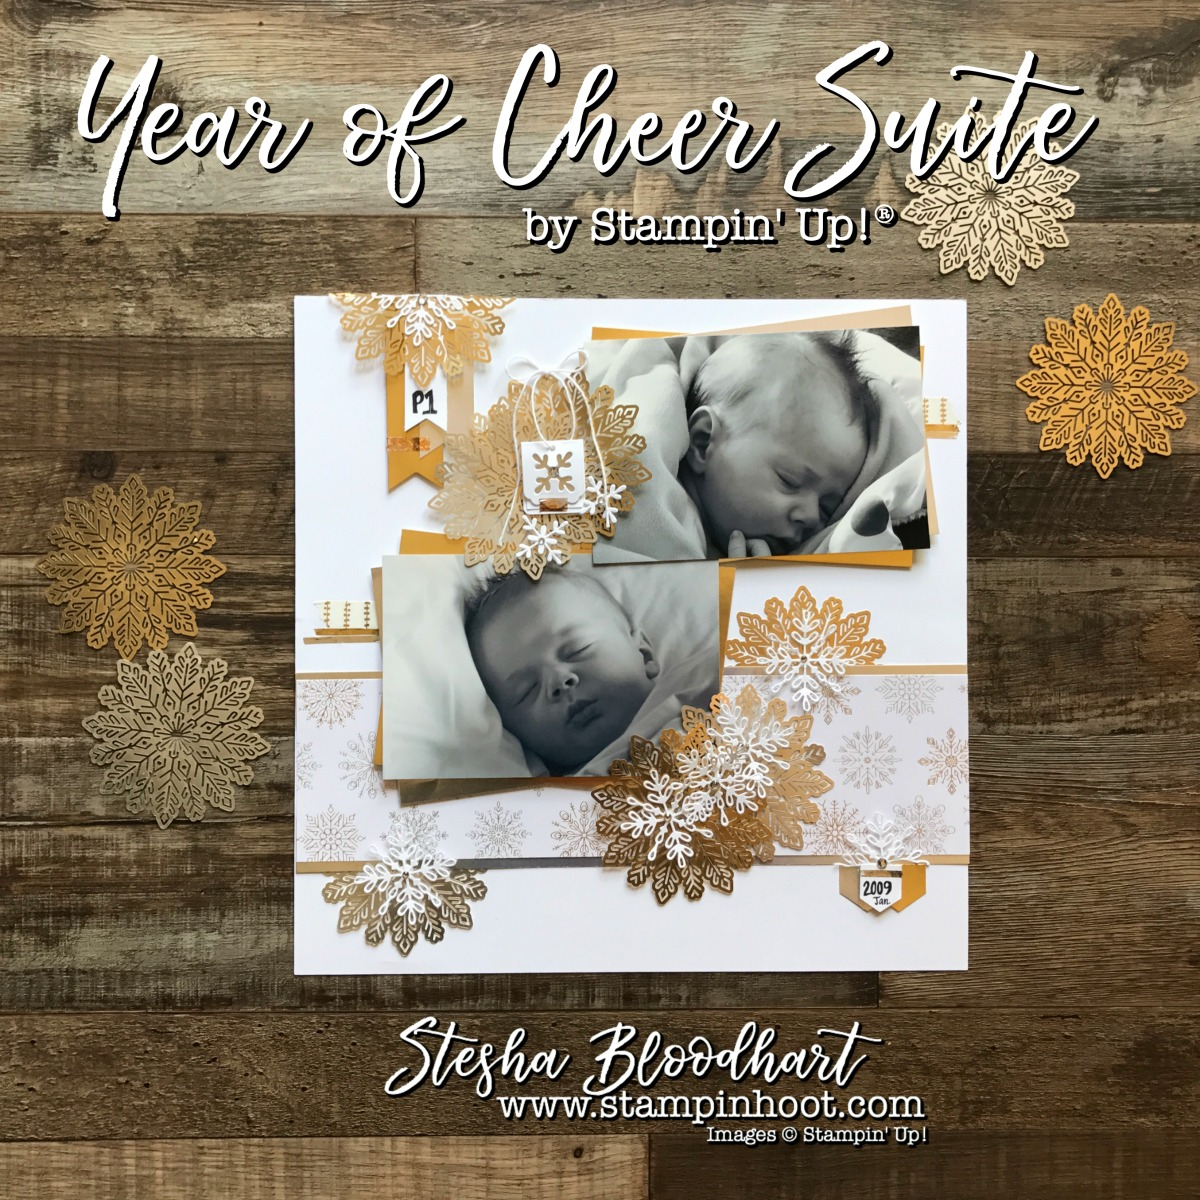 Year of Cheer Suite of Products by Stampin' Up! 2017 Holiday Catalog for my Scrapbook Sunday Blog Feature. Stesha Bloodhart Stampin' Hoot #stampinup #yearofcheer #scrapbook #scrapbooksunday #papercrafts